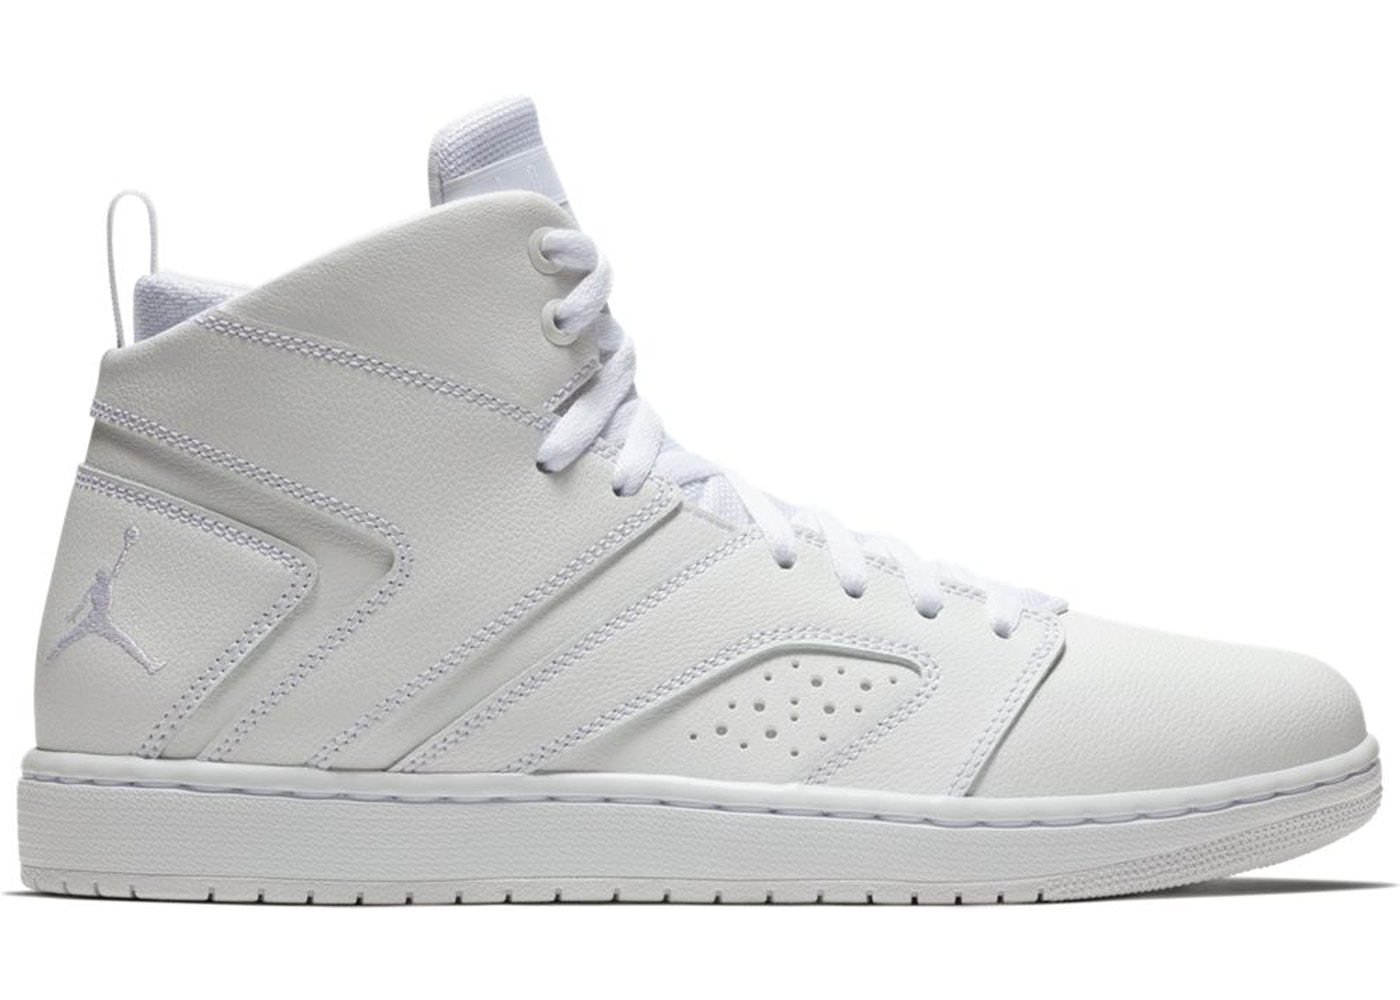 f34dbbcbe5f0 Jordan Flight Legend Triple White - AA2526-100